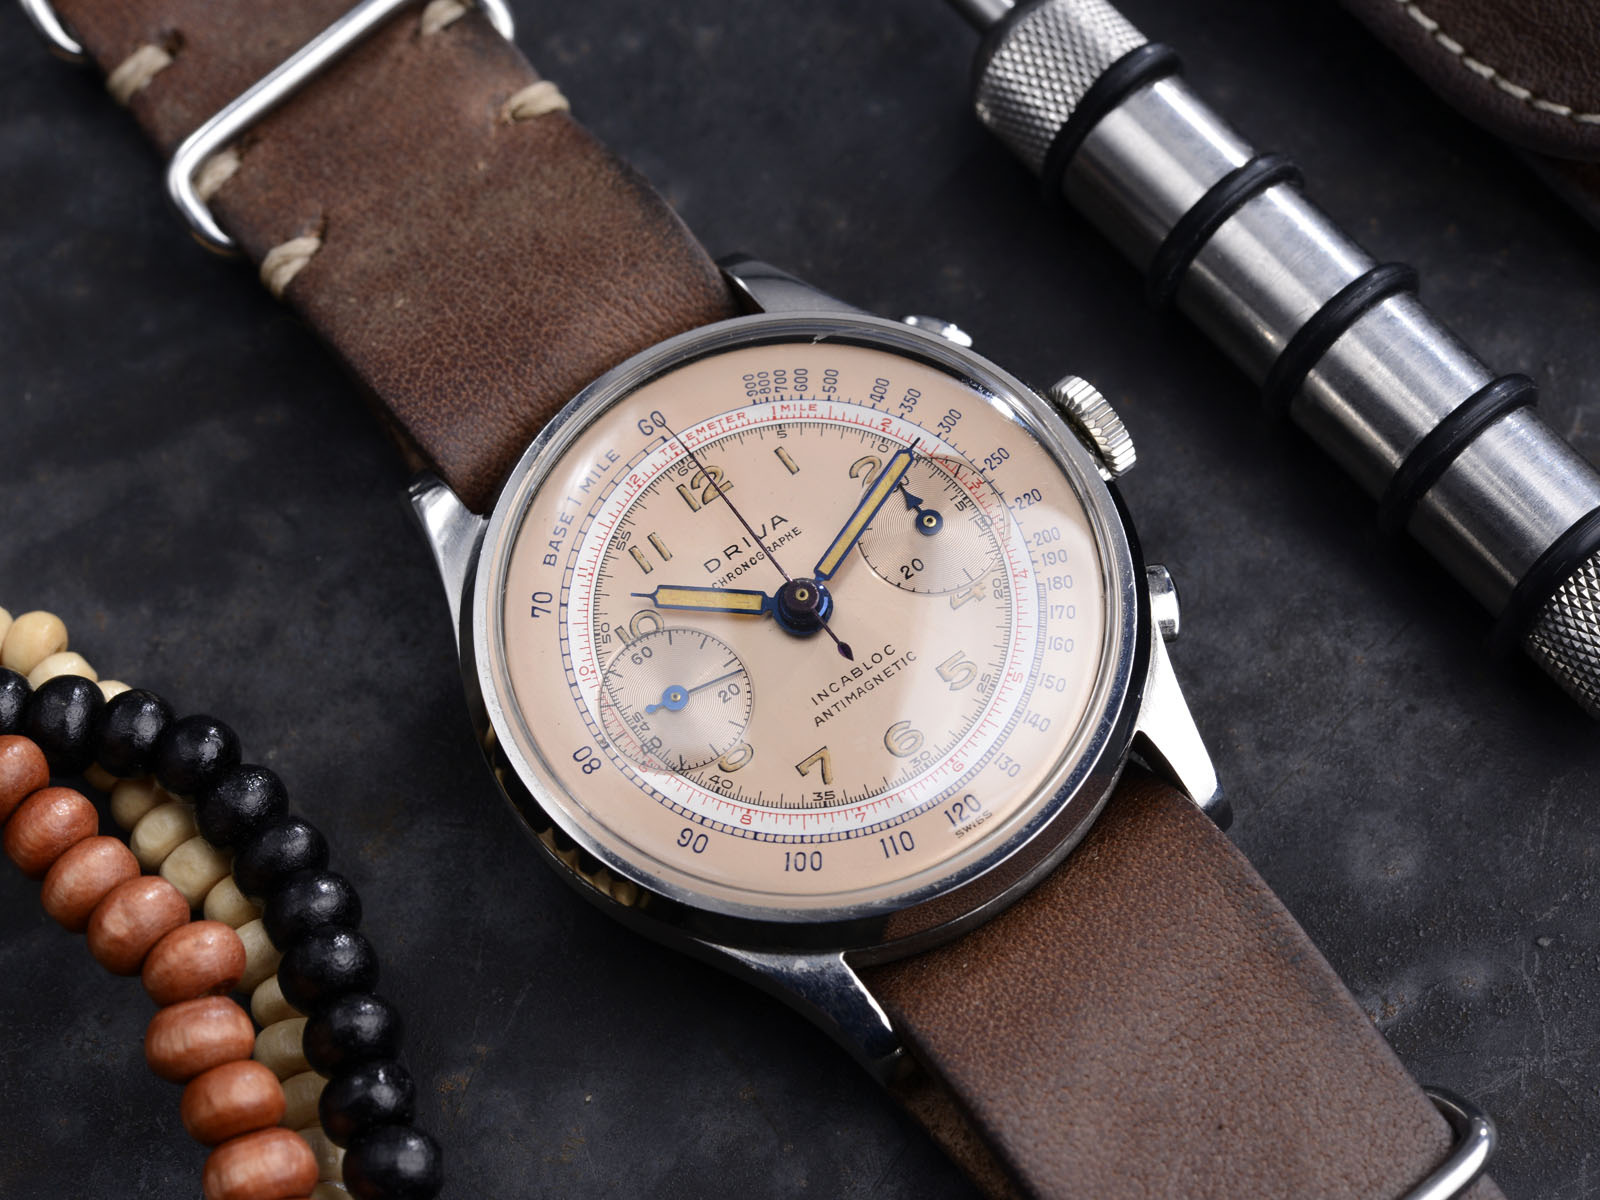 B&S W-98 Driva Chrono 3:15 01